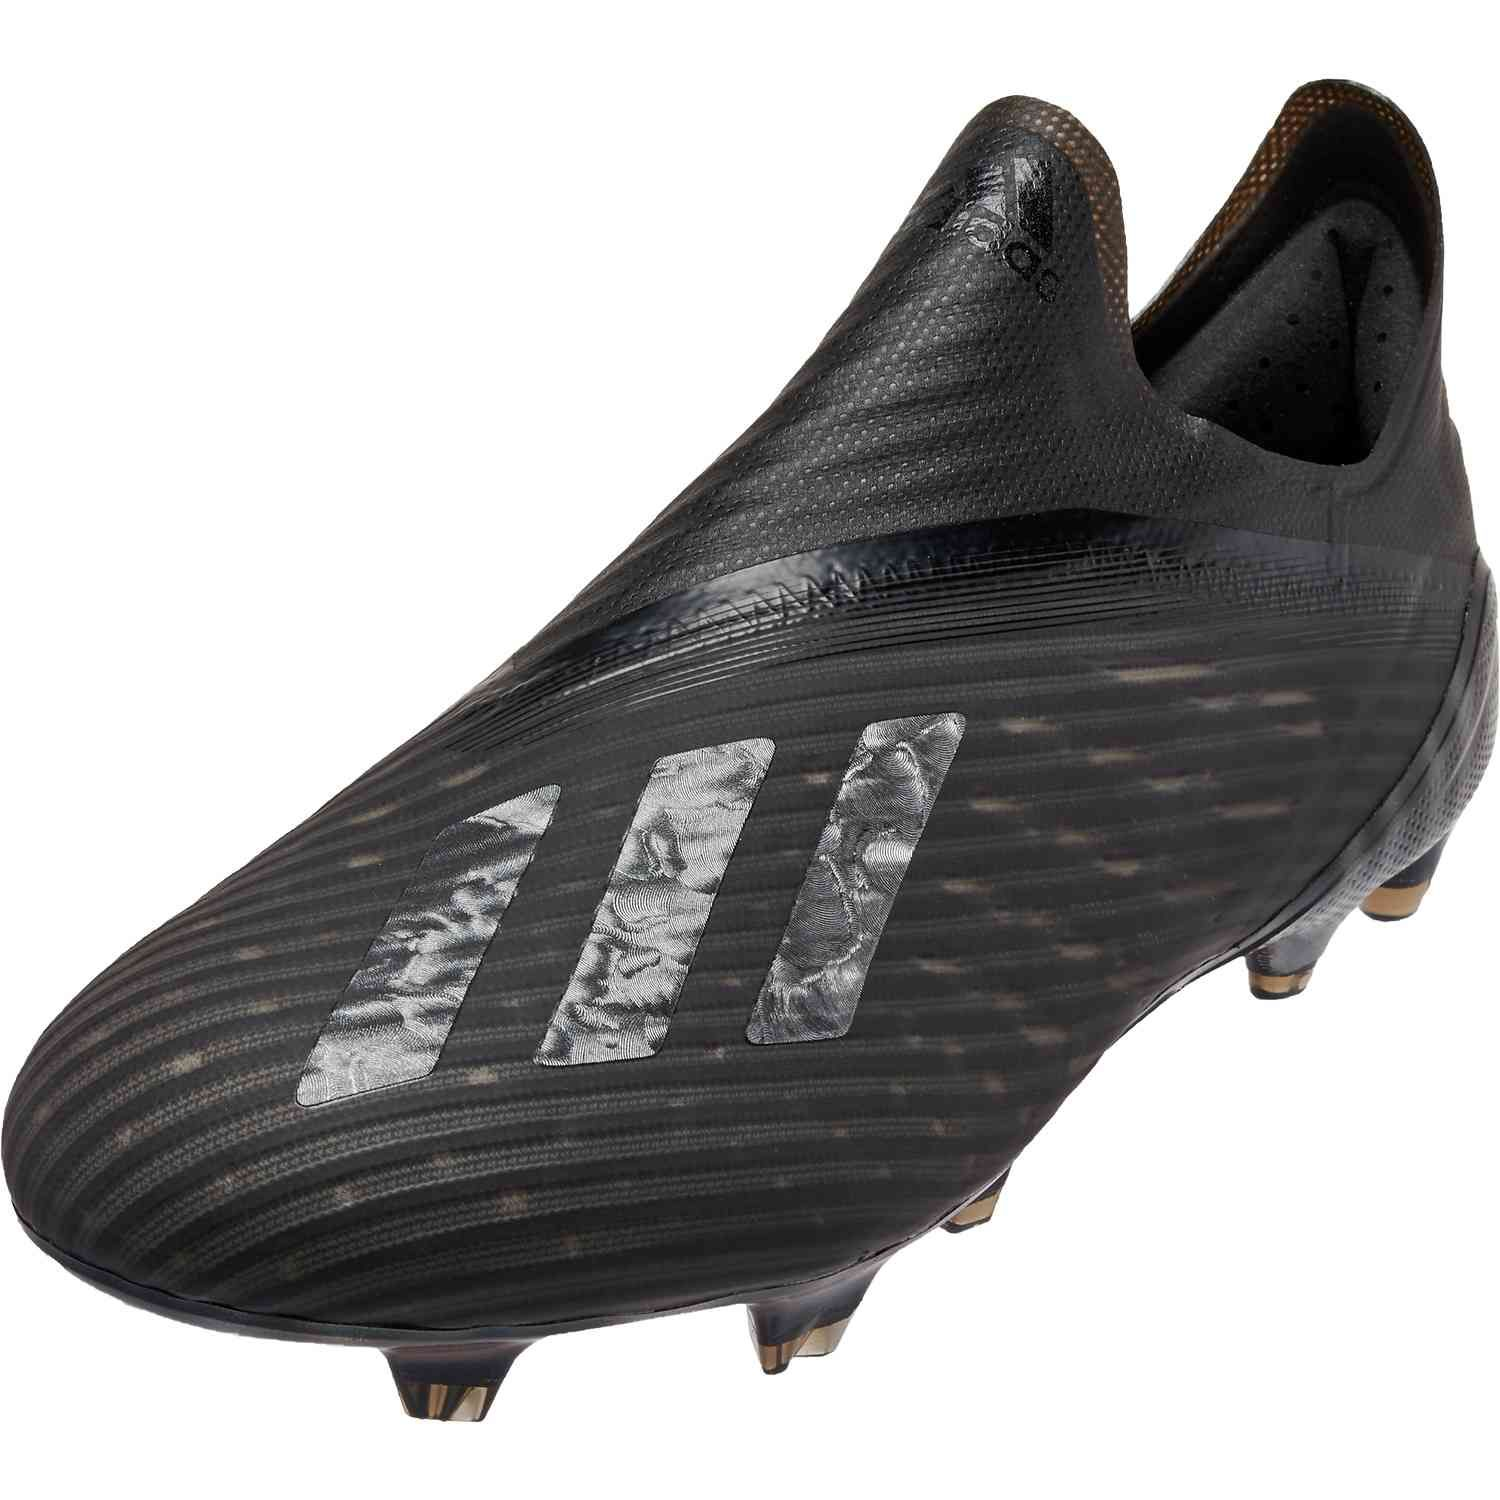 Adidas X 19 Fg Shadowbeast Pack Soccerpro In 2020 Soccer Shoes Adidas Soccer Cleats